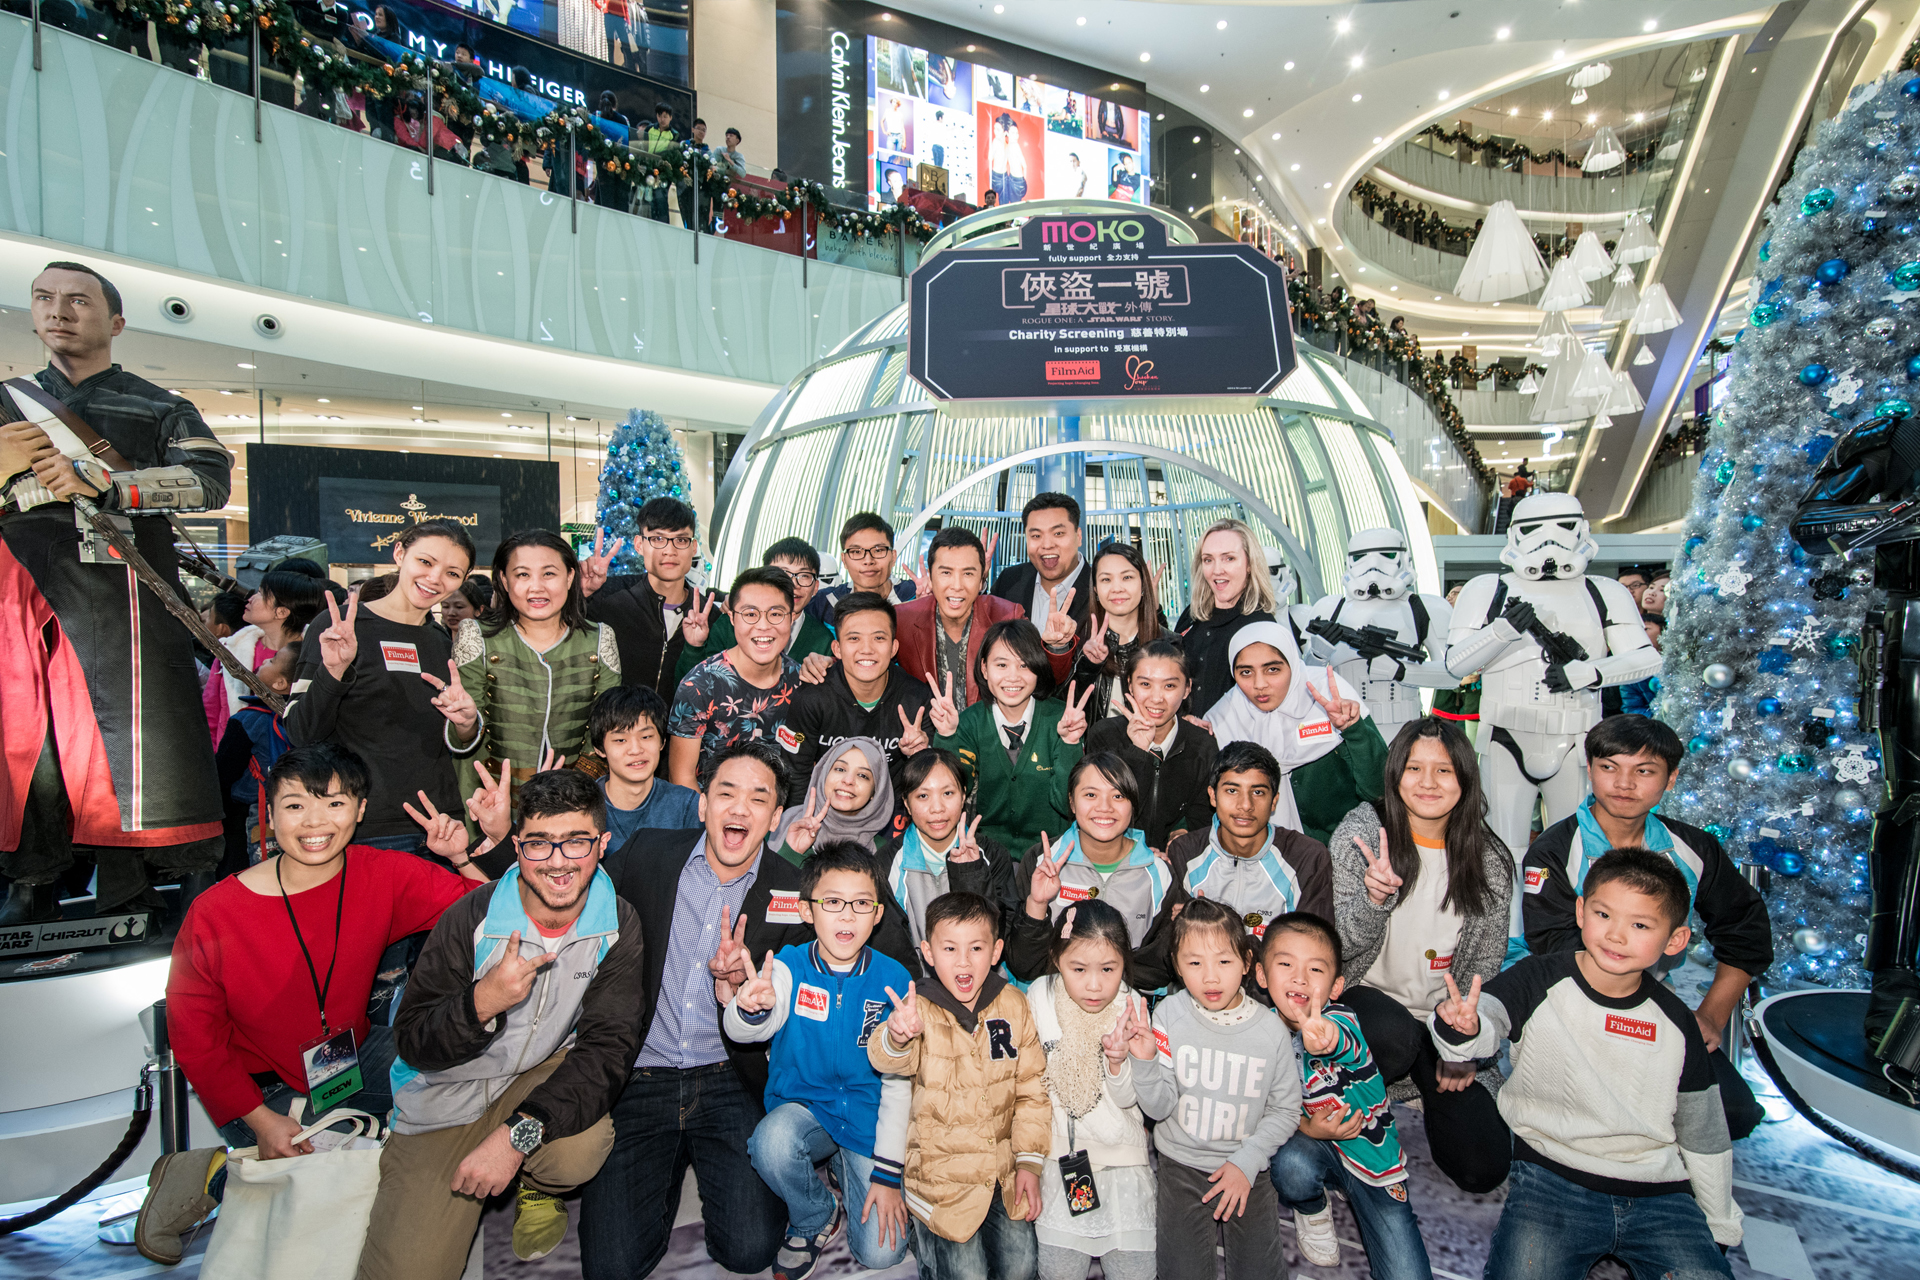 Rouge one A Star War Story Charity Screening 3